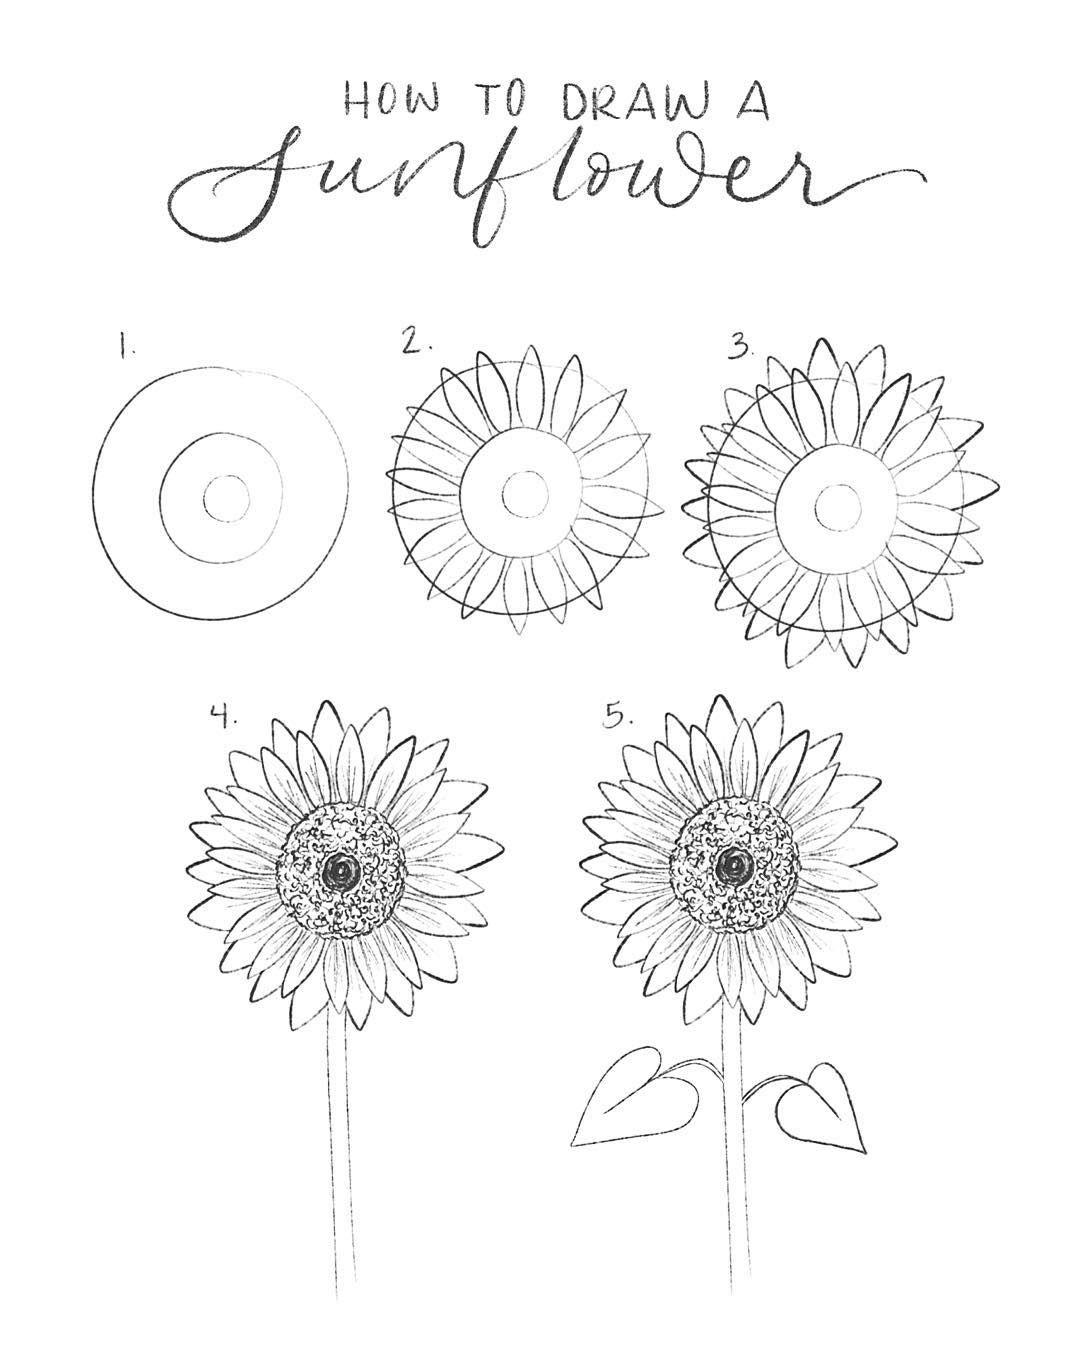 "Kansas McGraw on Instagram: ""How to draw a sunflower in 5 easy steps:  1. Draw 3 circles starting with a large, then a medium, then a small.  2. Draw one set of petals…"""